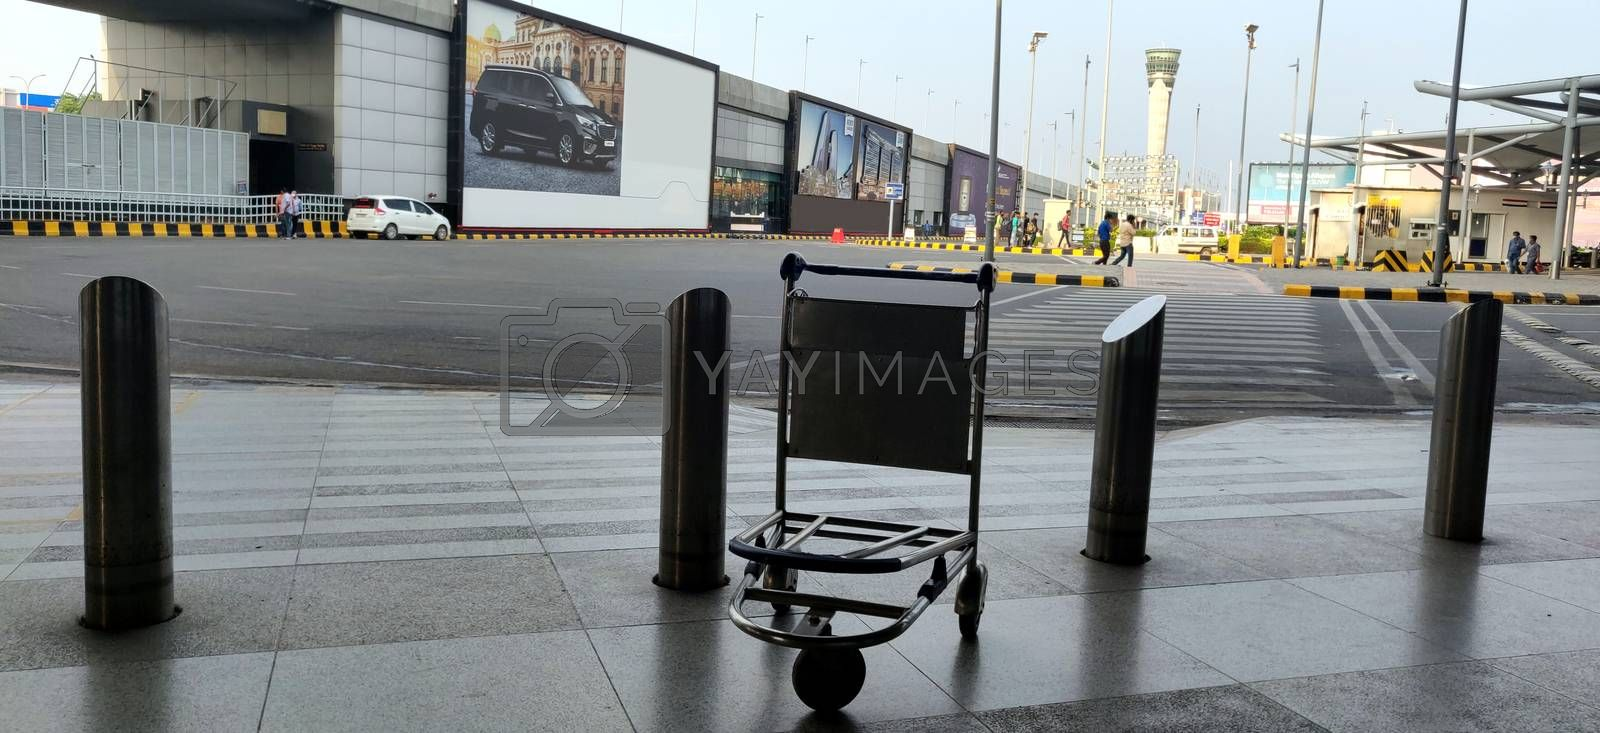 Empty bag trolley at International airport of Delhi in June 2020 amidst corona virus pandemic at Indira Gandhi International Airport n Delhi, India